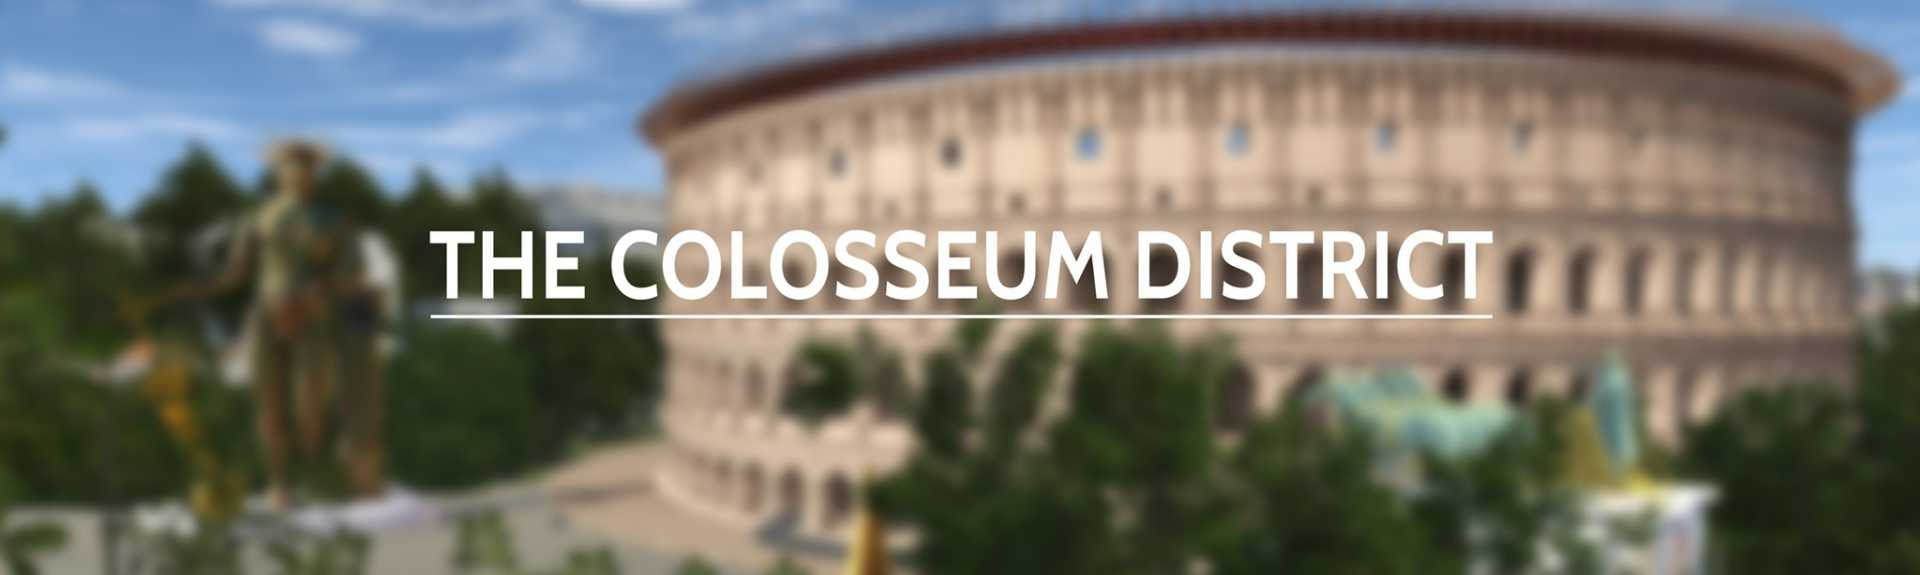 Rome Reborn: Colosseum District